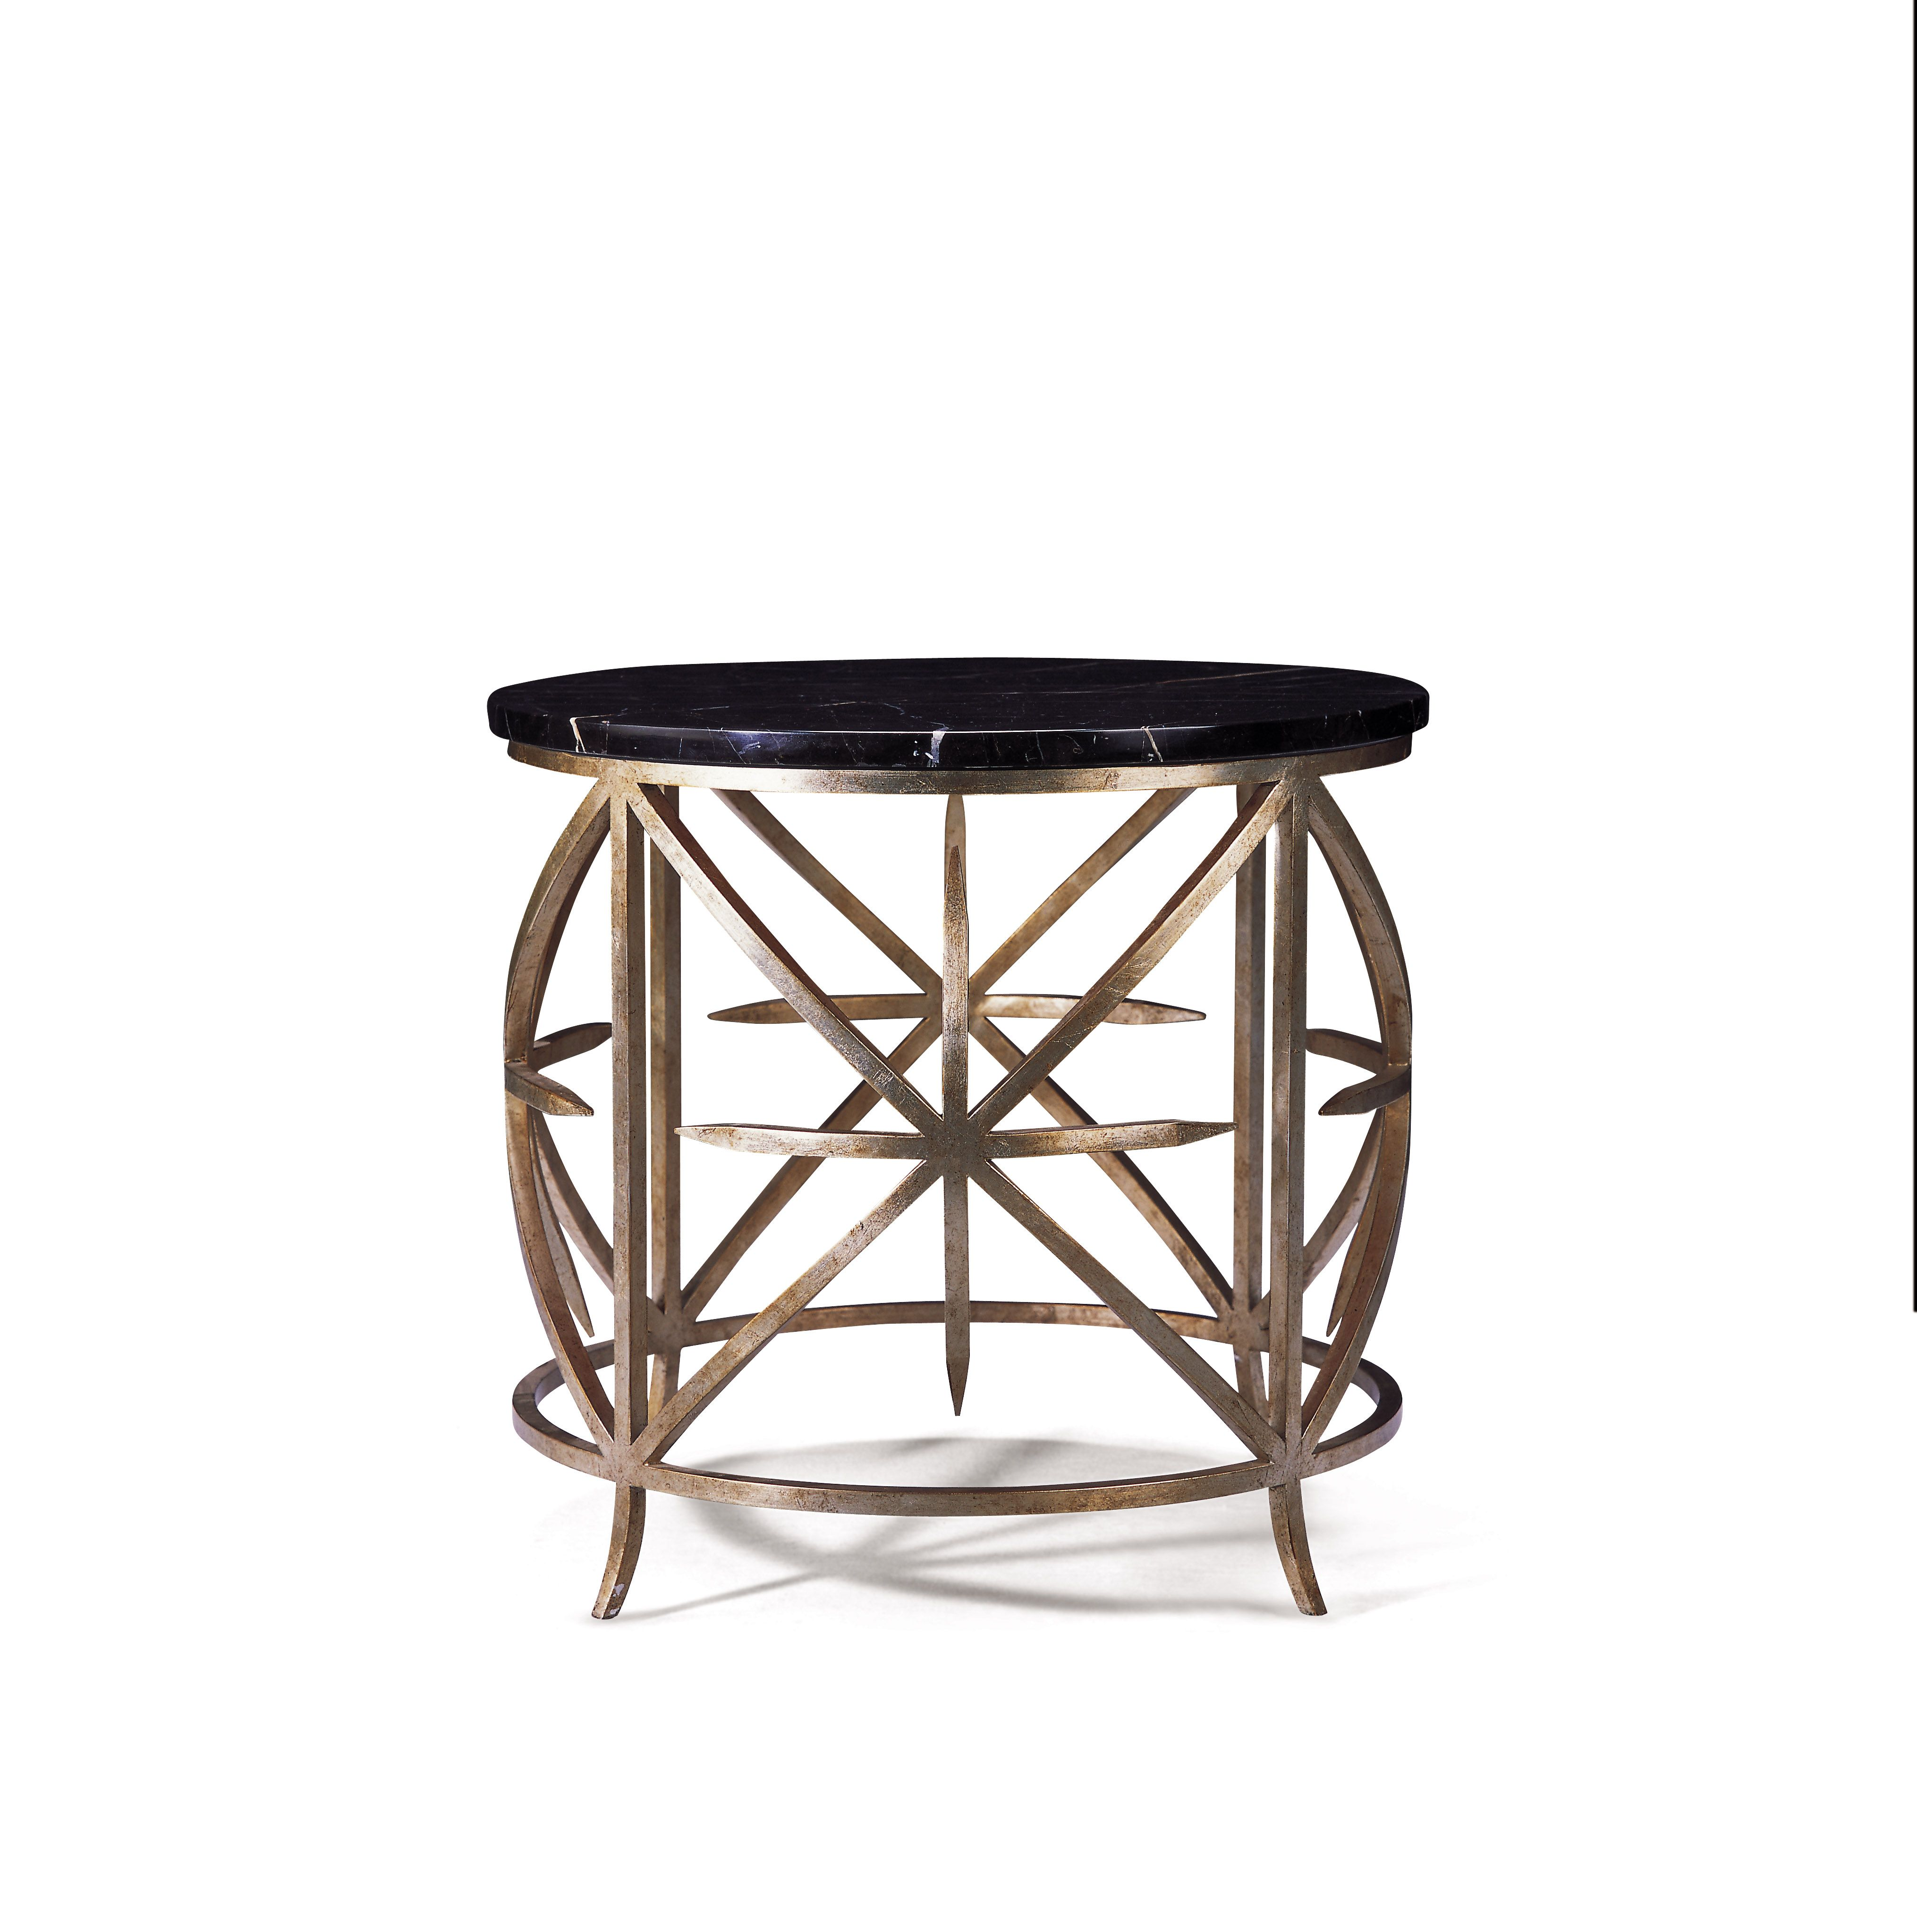 43028 // Bolier // Occasional Collection // Side Table